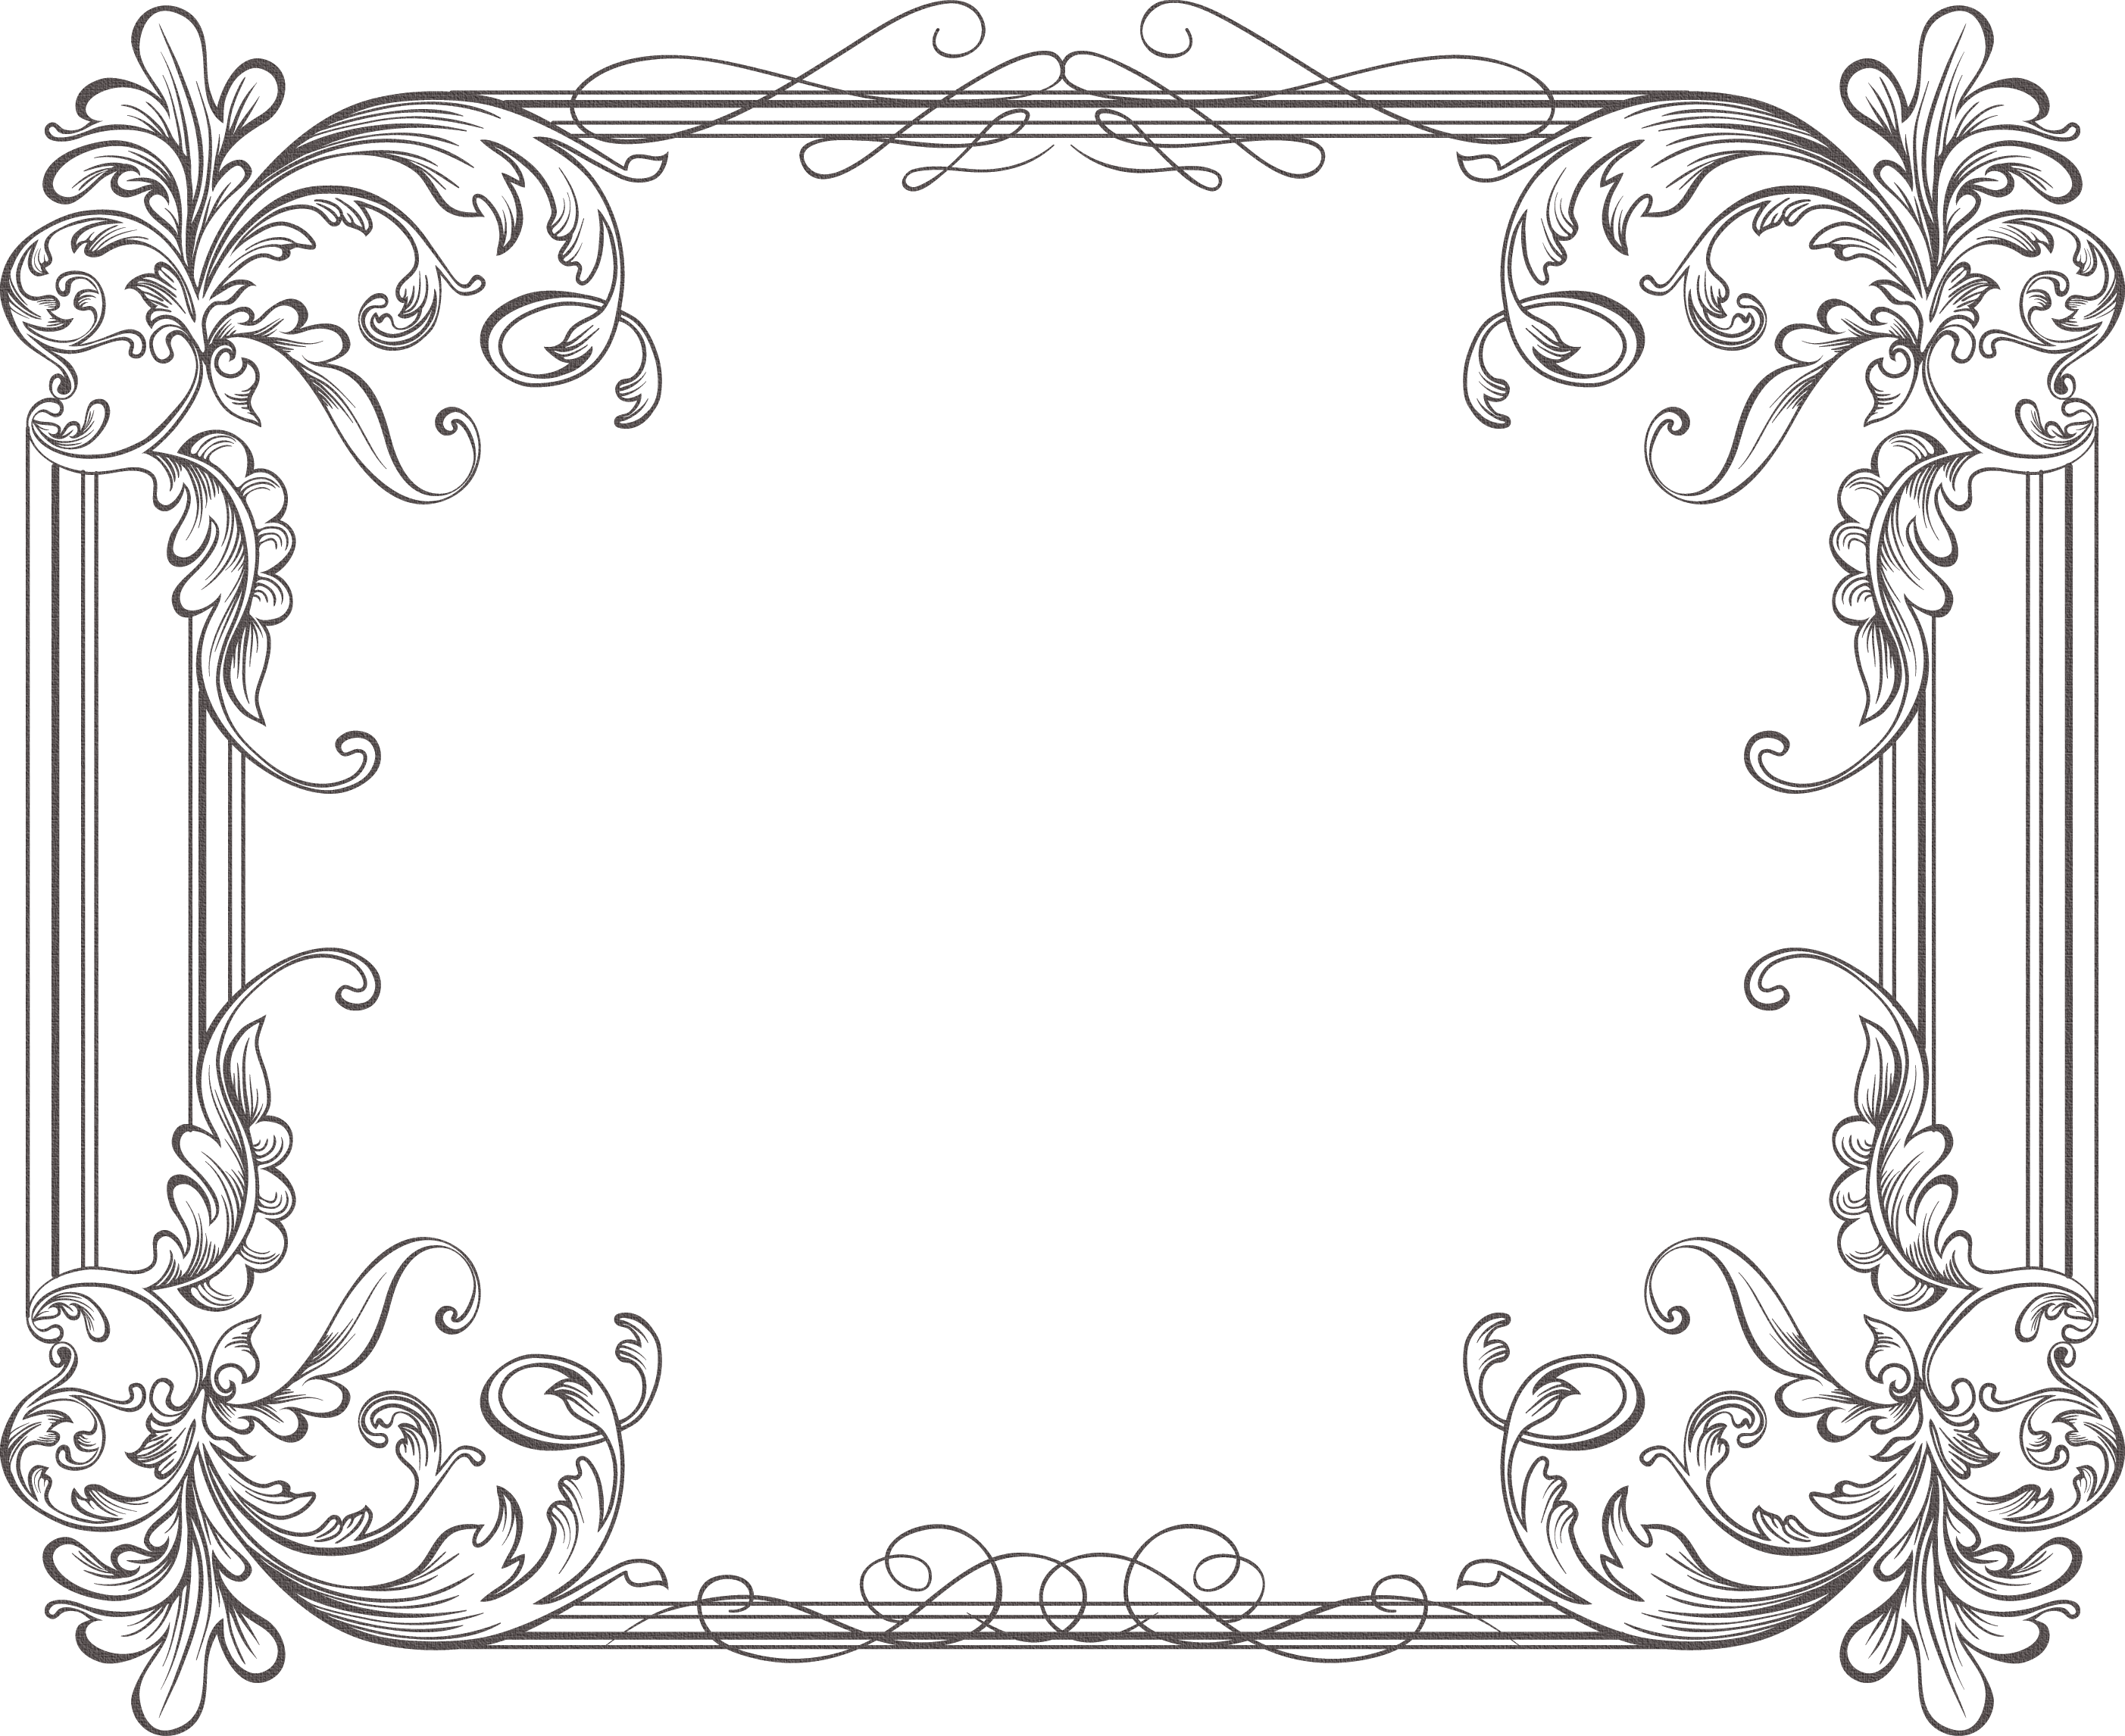 Vintage ornaments frame branches png transparent background outline. Pin by mary barnes